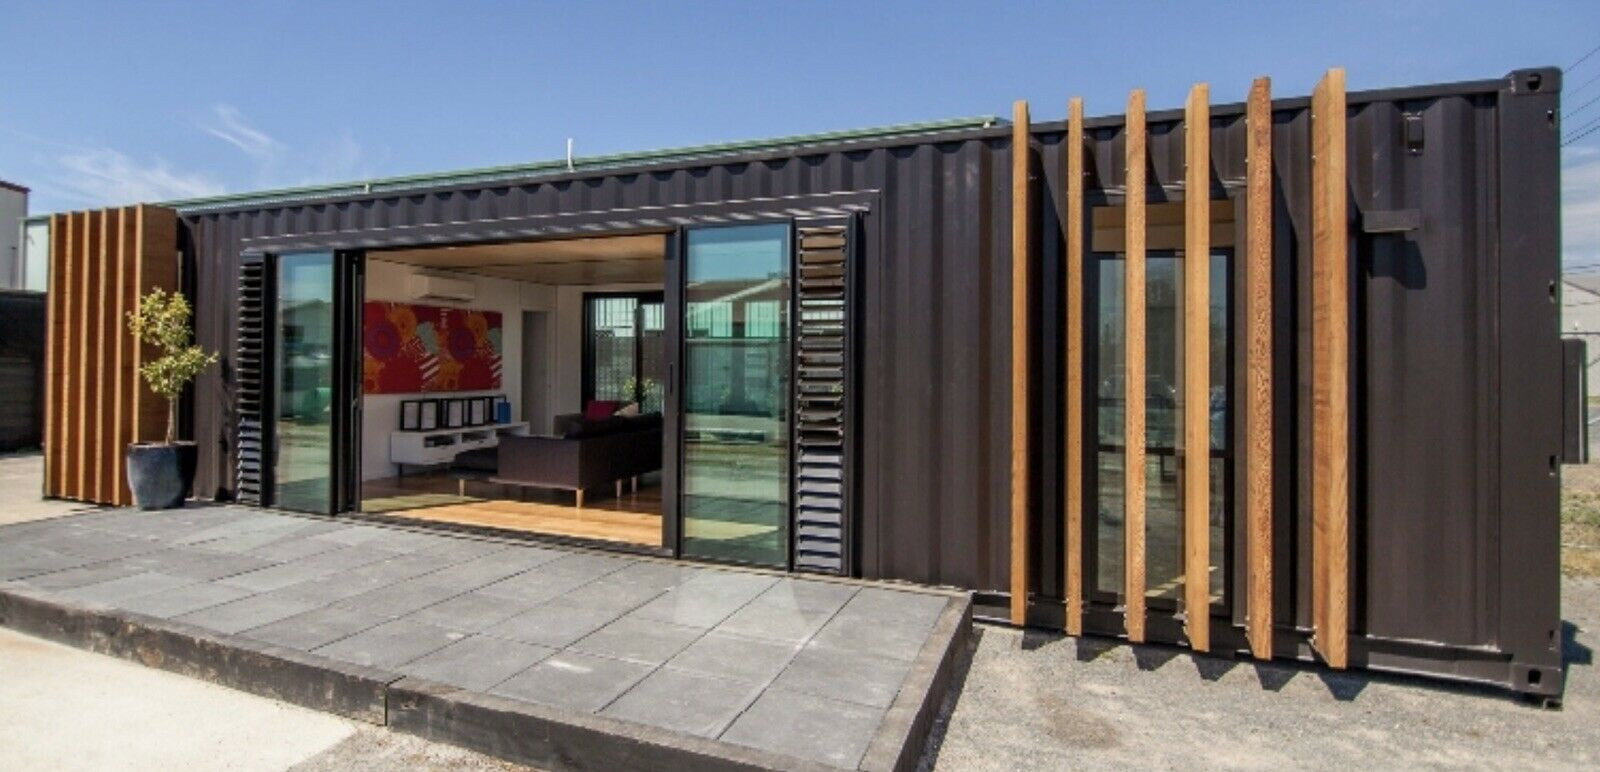 Modern Shipping Container Home 7 viewed per hour$77,800.00free local pickupbuy it nowadd to